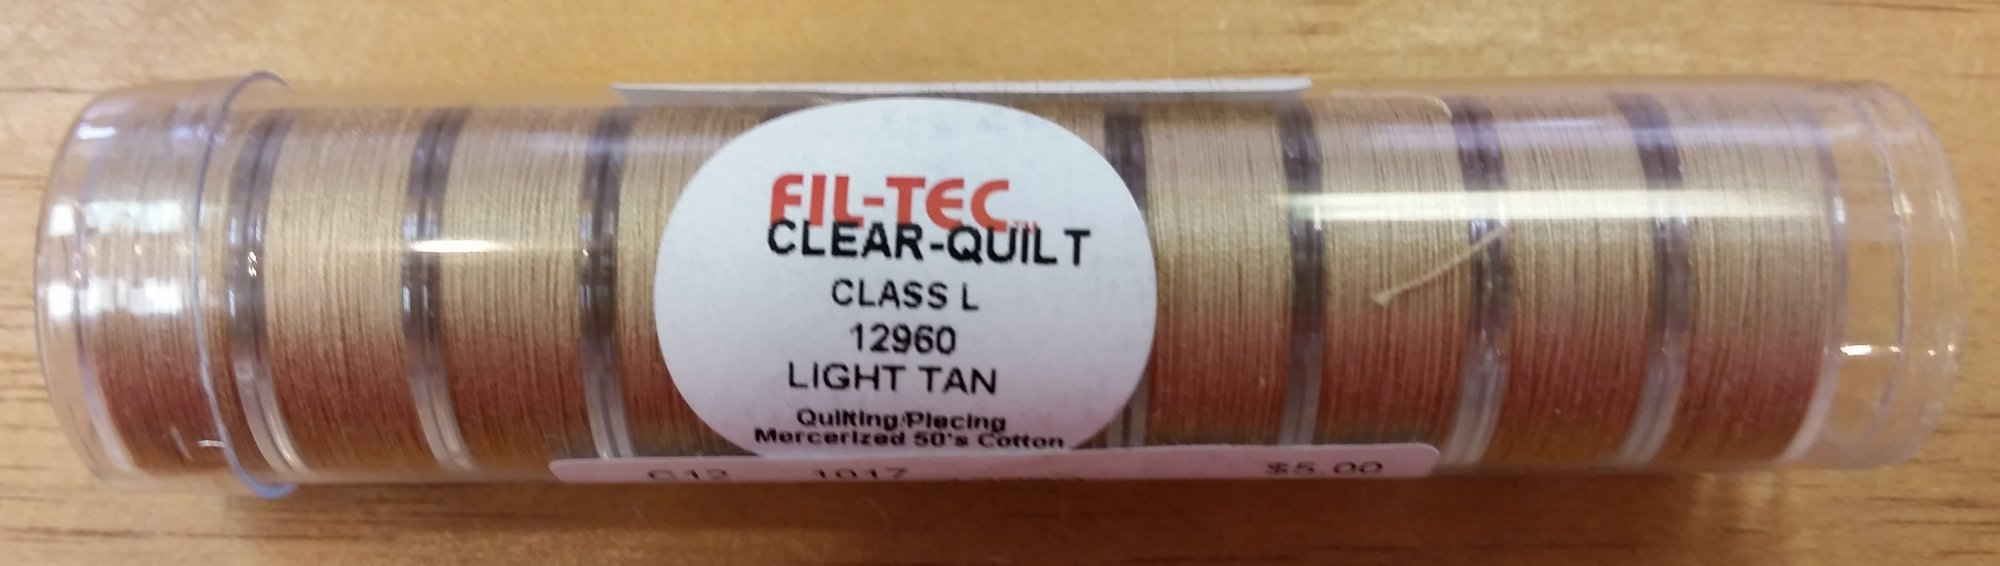 Prewound Bobbins Cotton Light Tan Tube